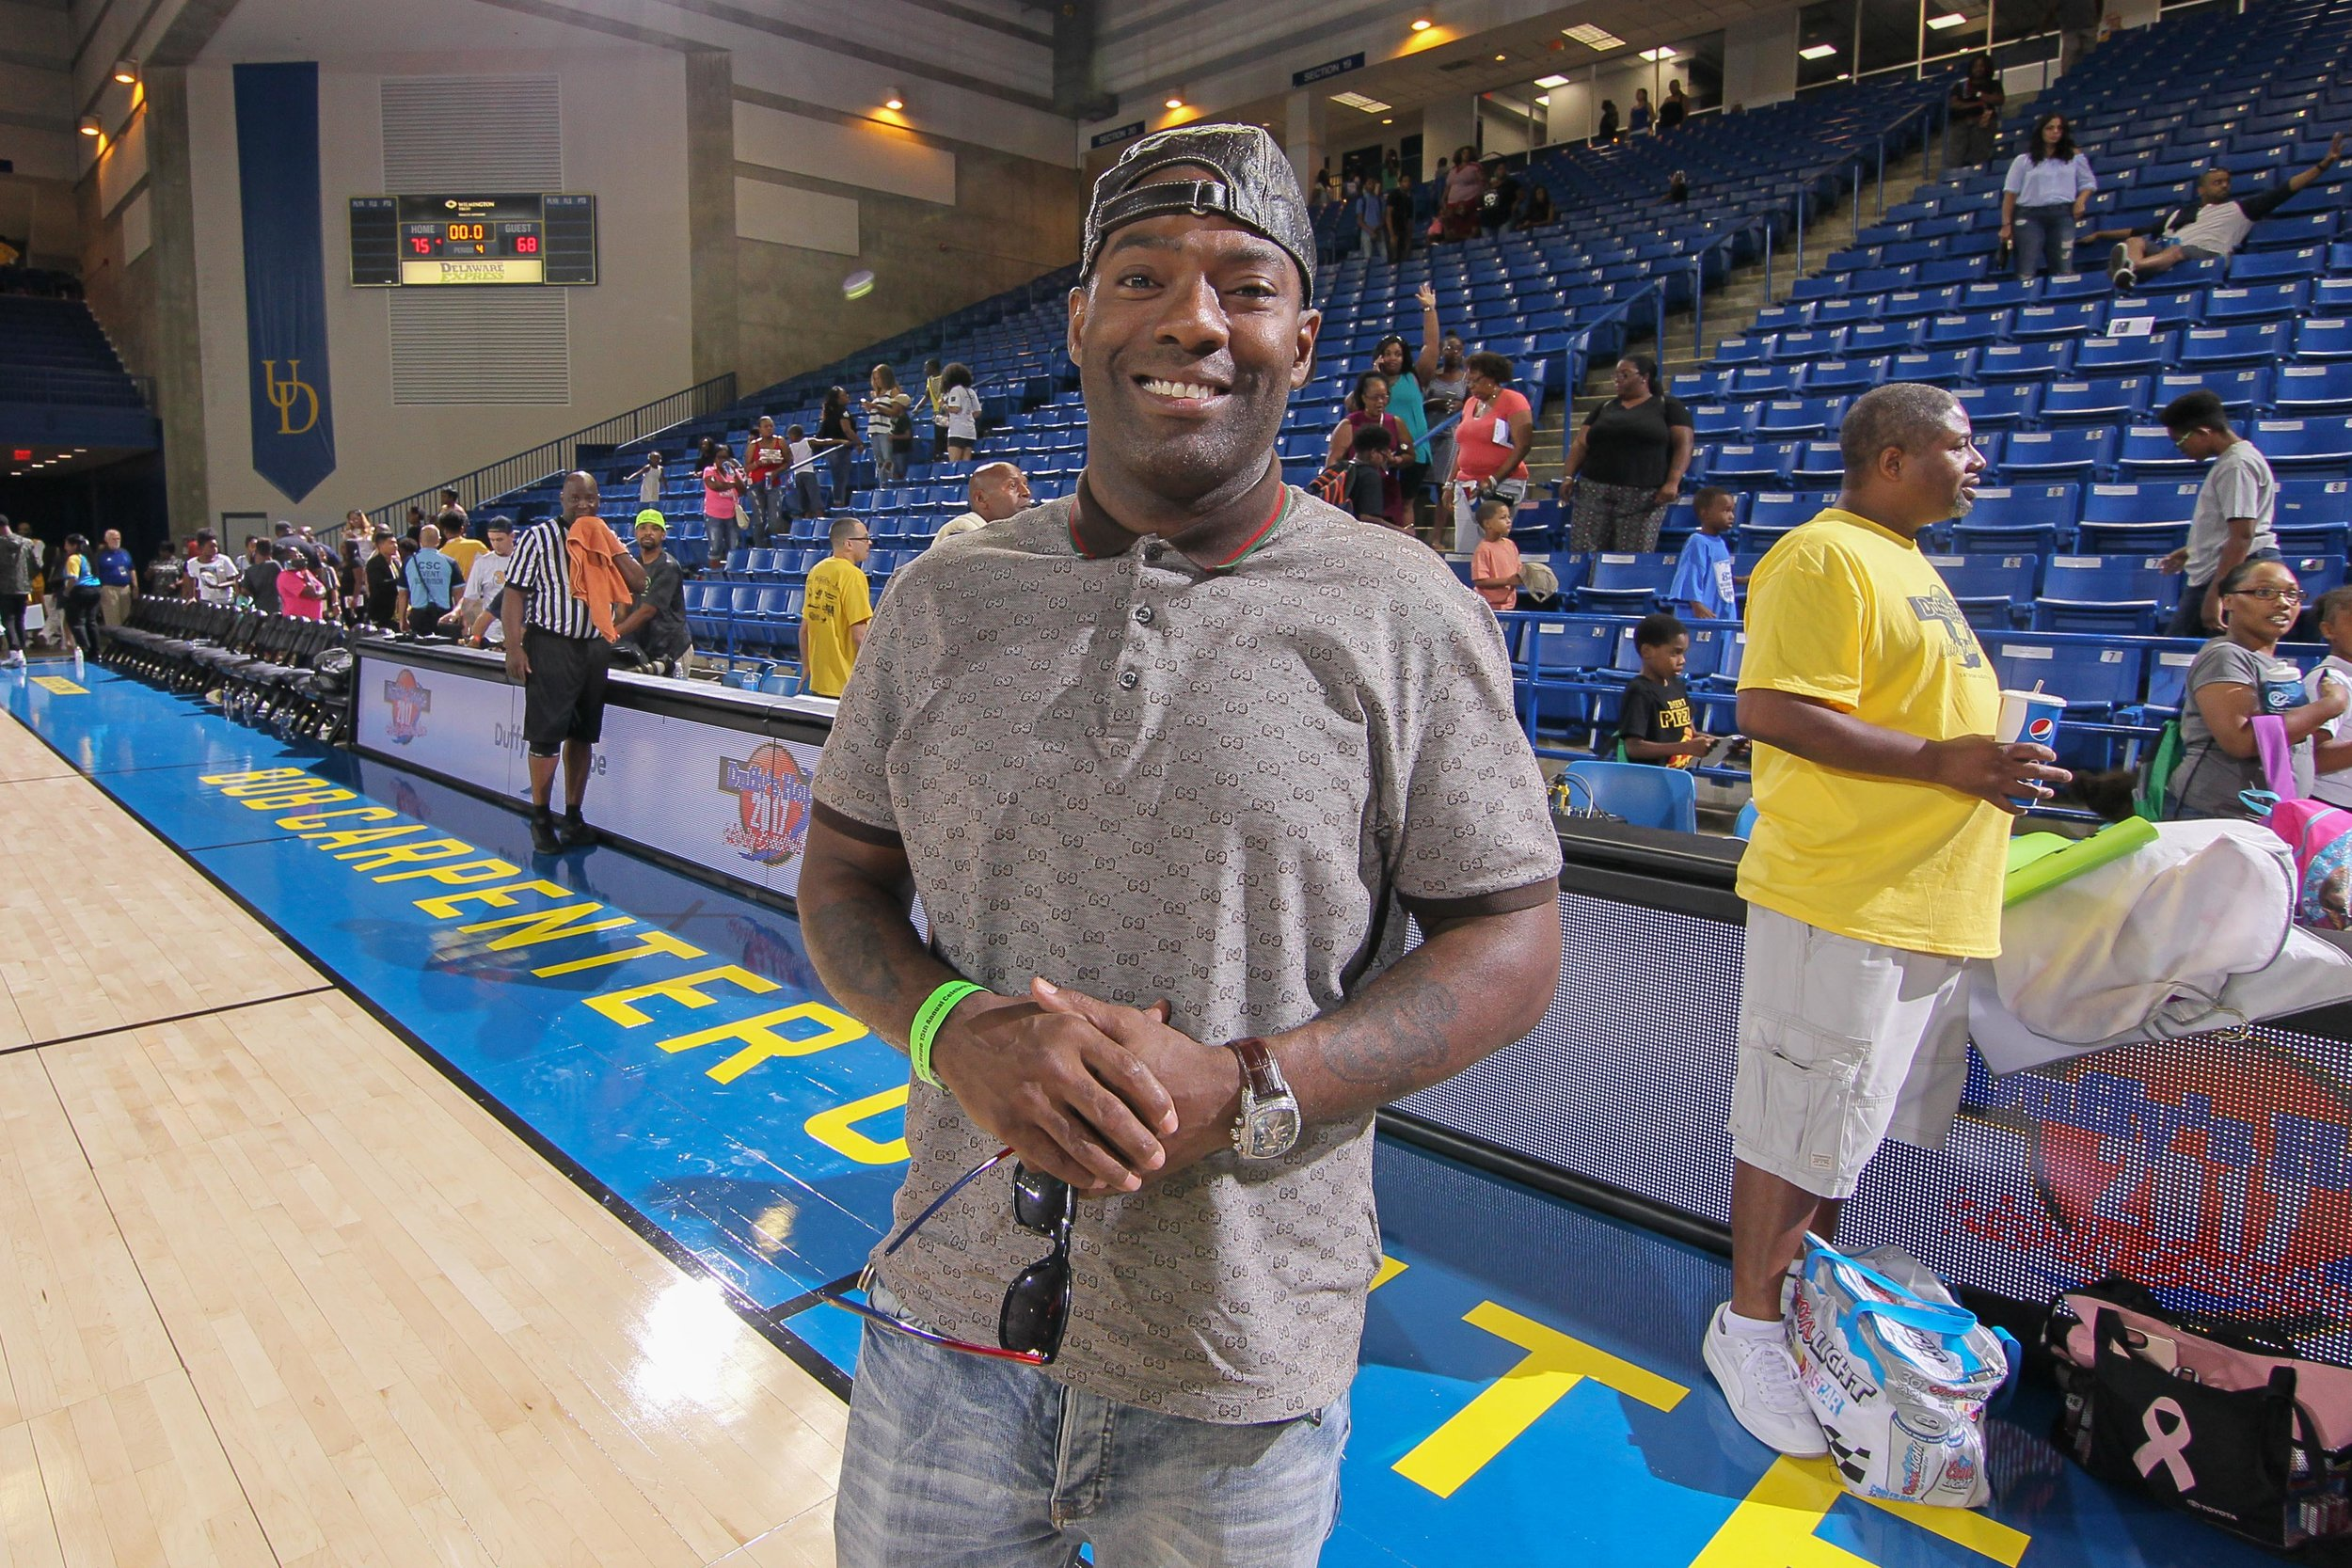 """Hassan Johnson (of """"The Wire"""") Supporting the Game"""